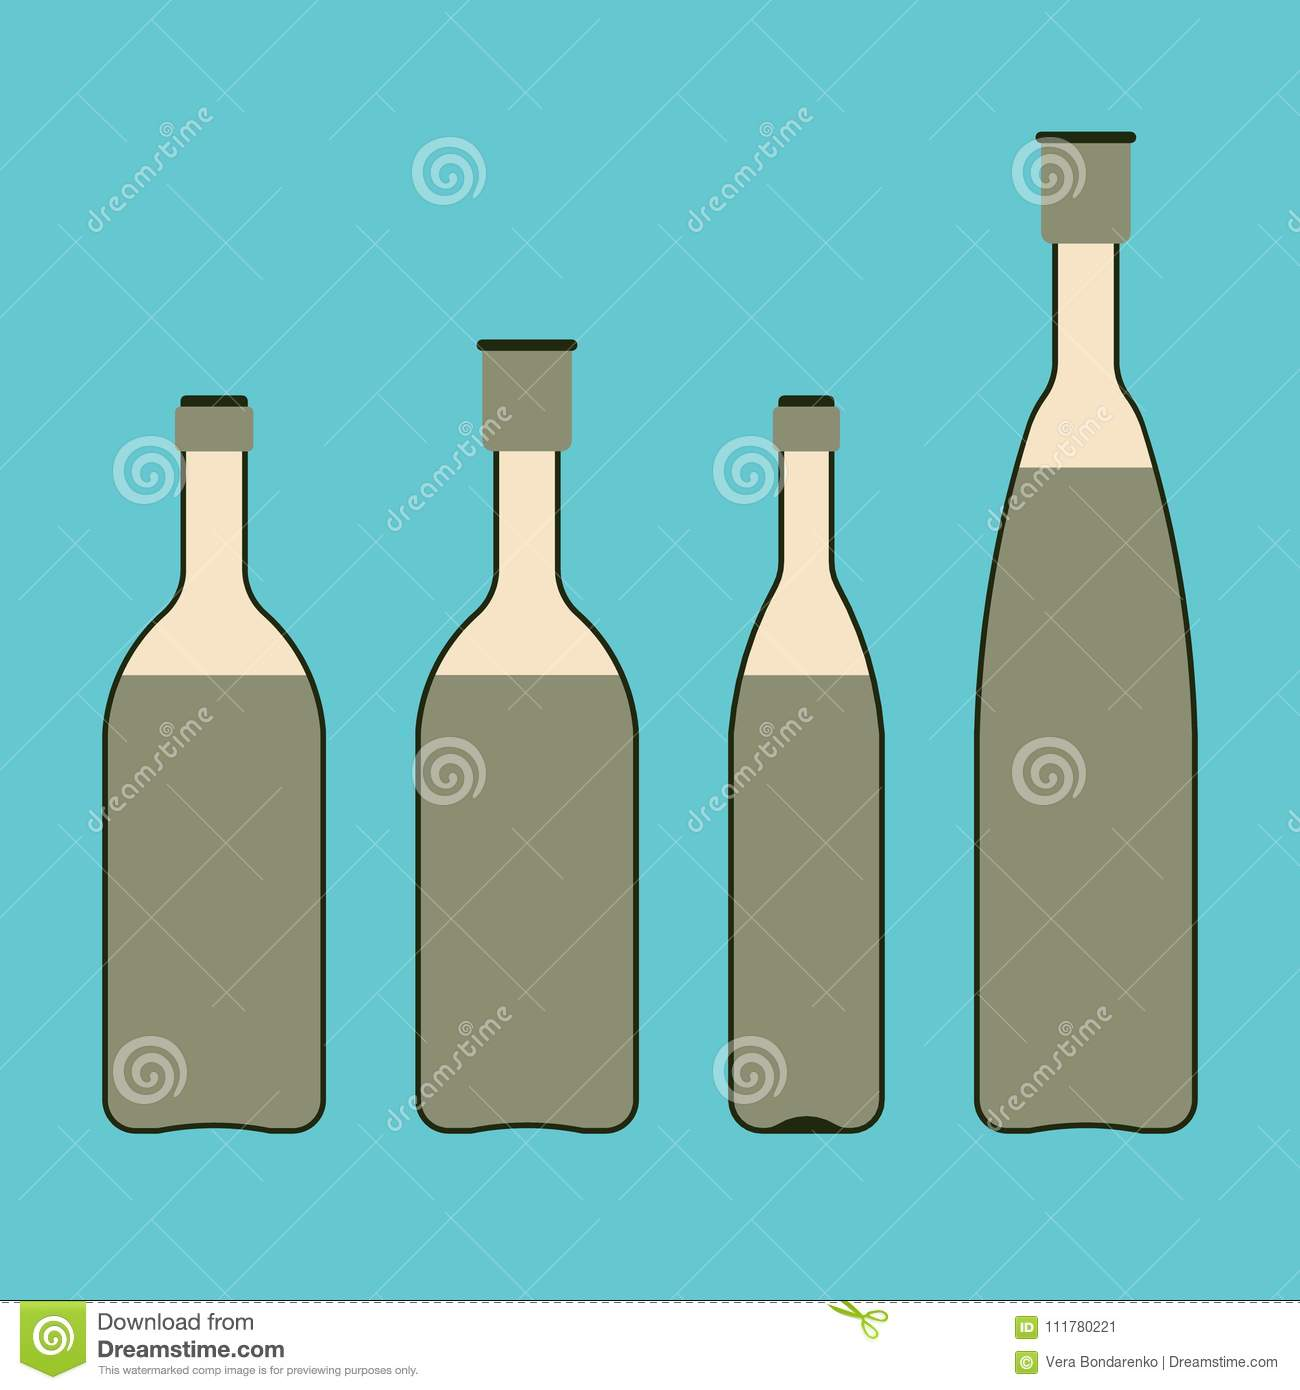 A set of glass bottles with drinks or vegetable oil. Flat style vector illustration.